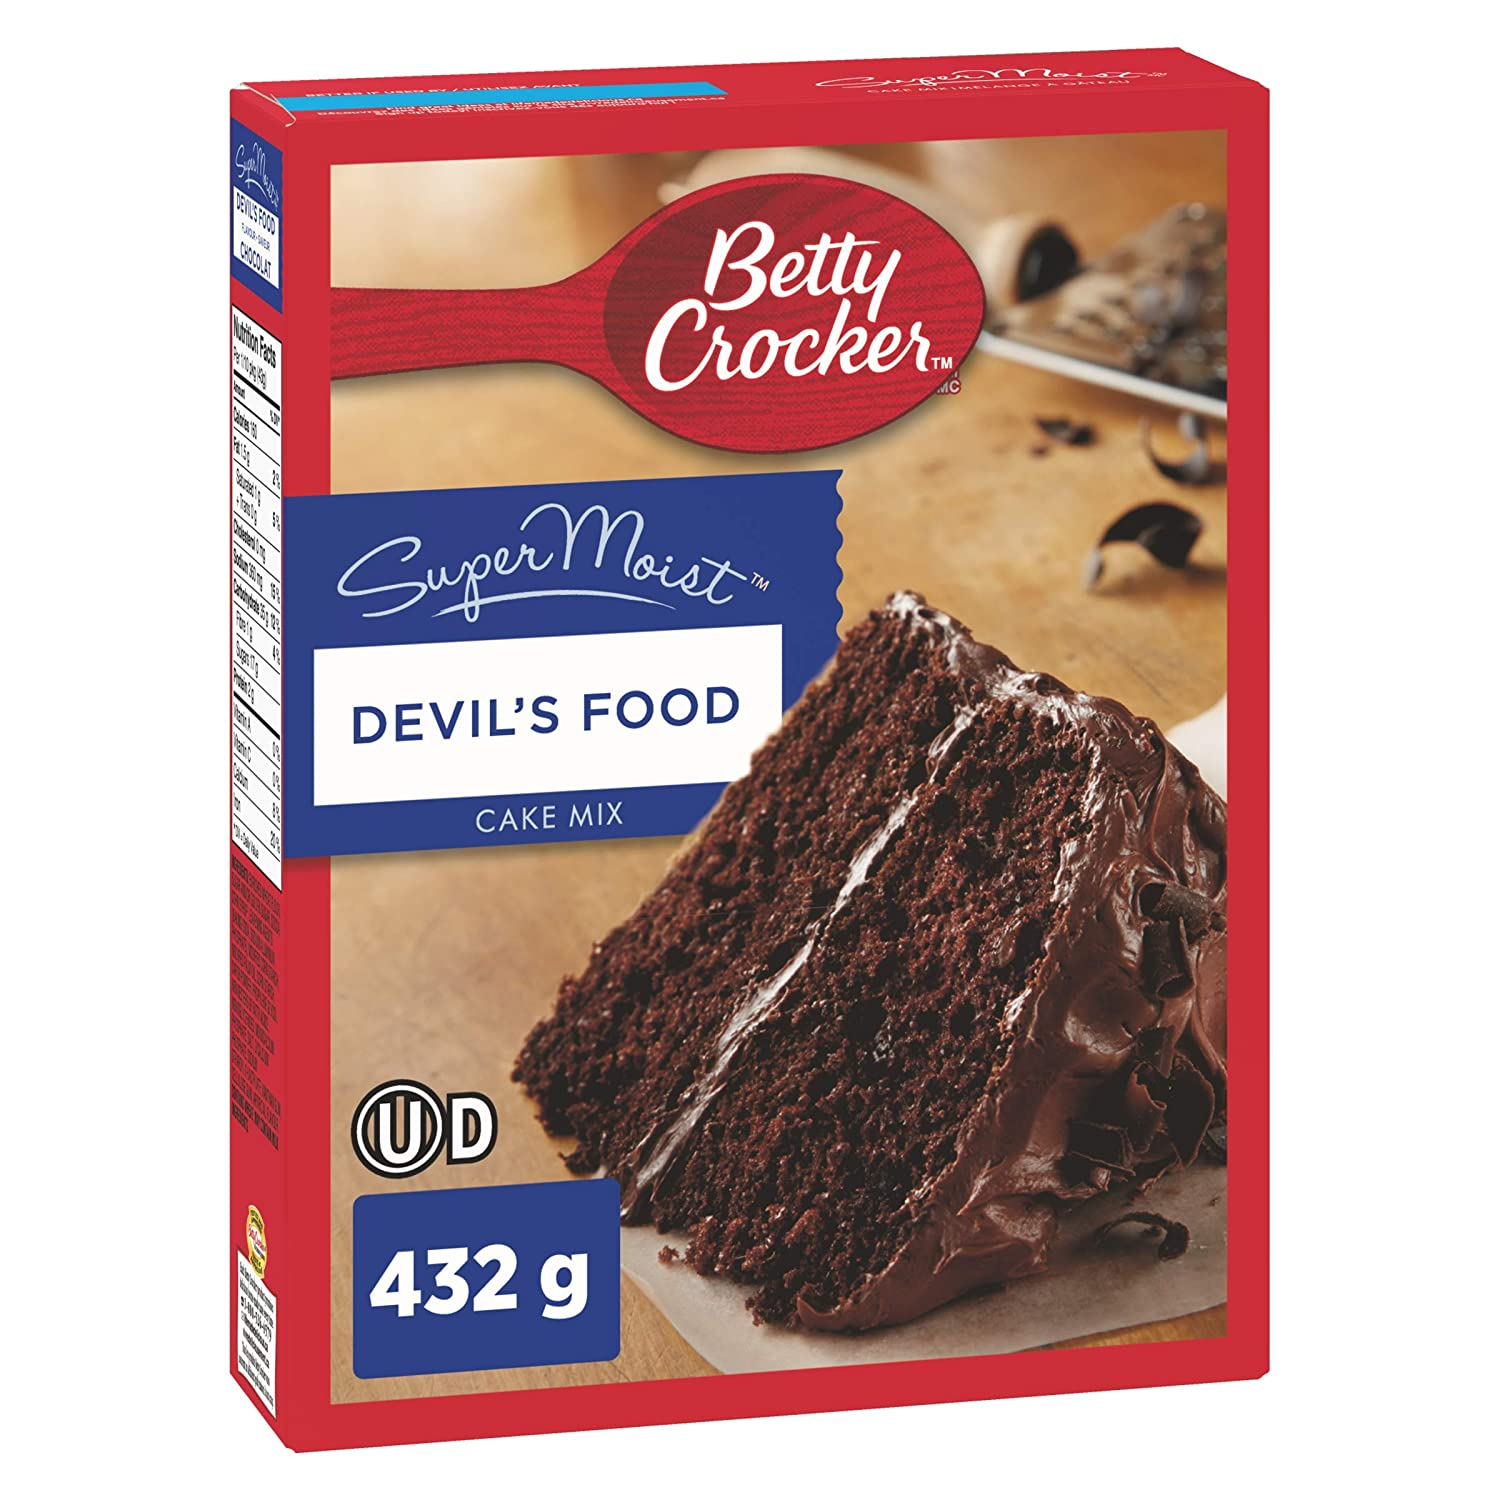 Betty Crocker Devil's Food Super Moist Cake Mix, 432g/15oz., {Imported from Canada}